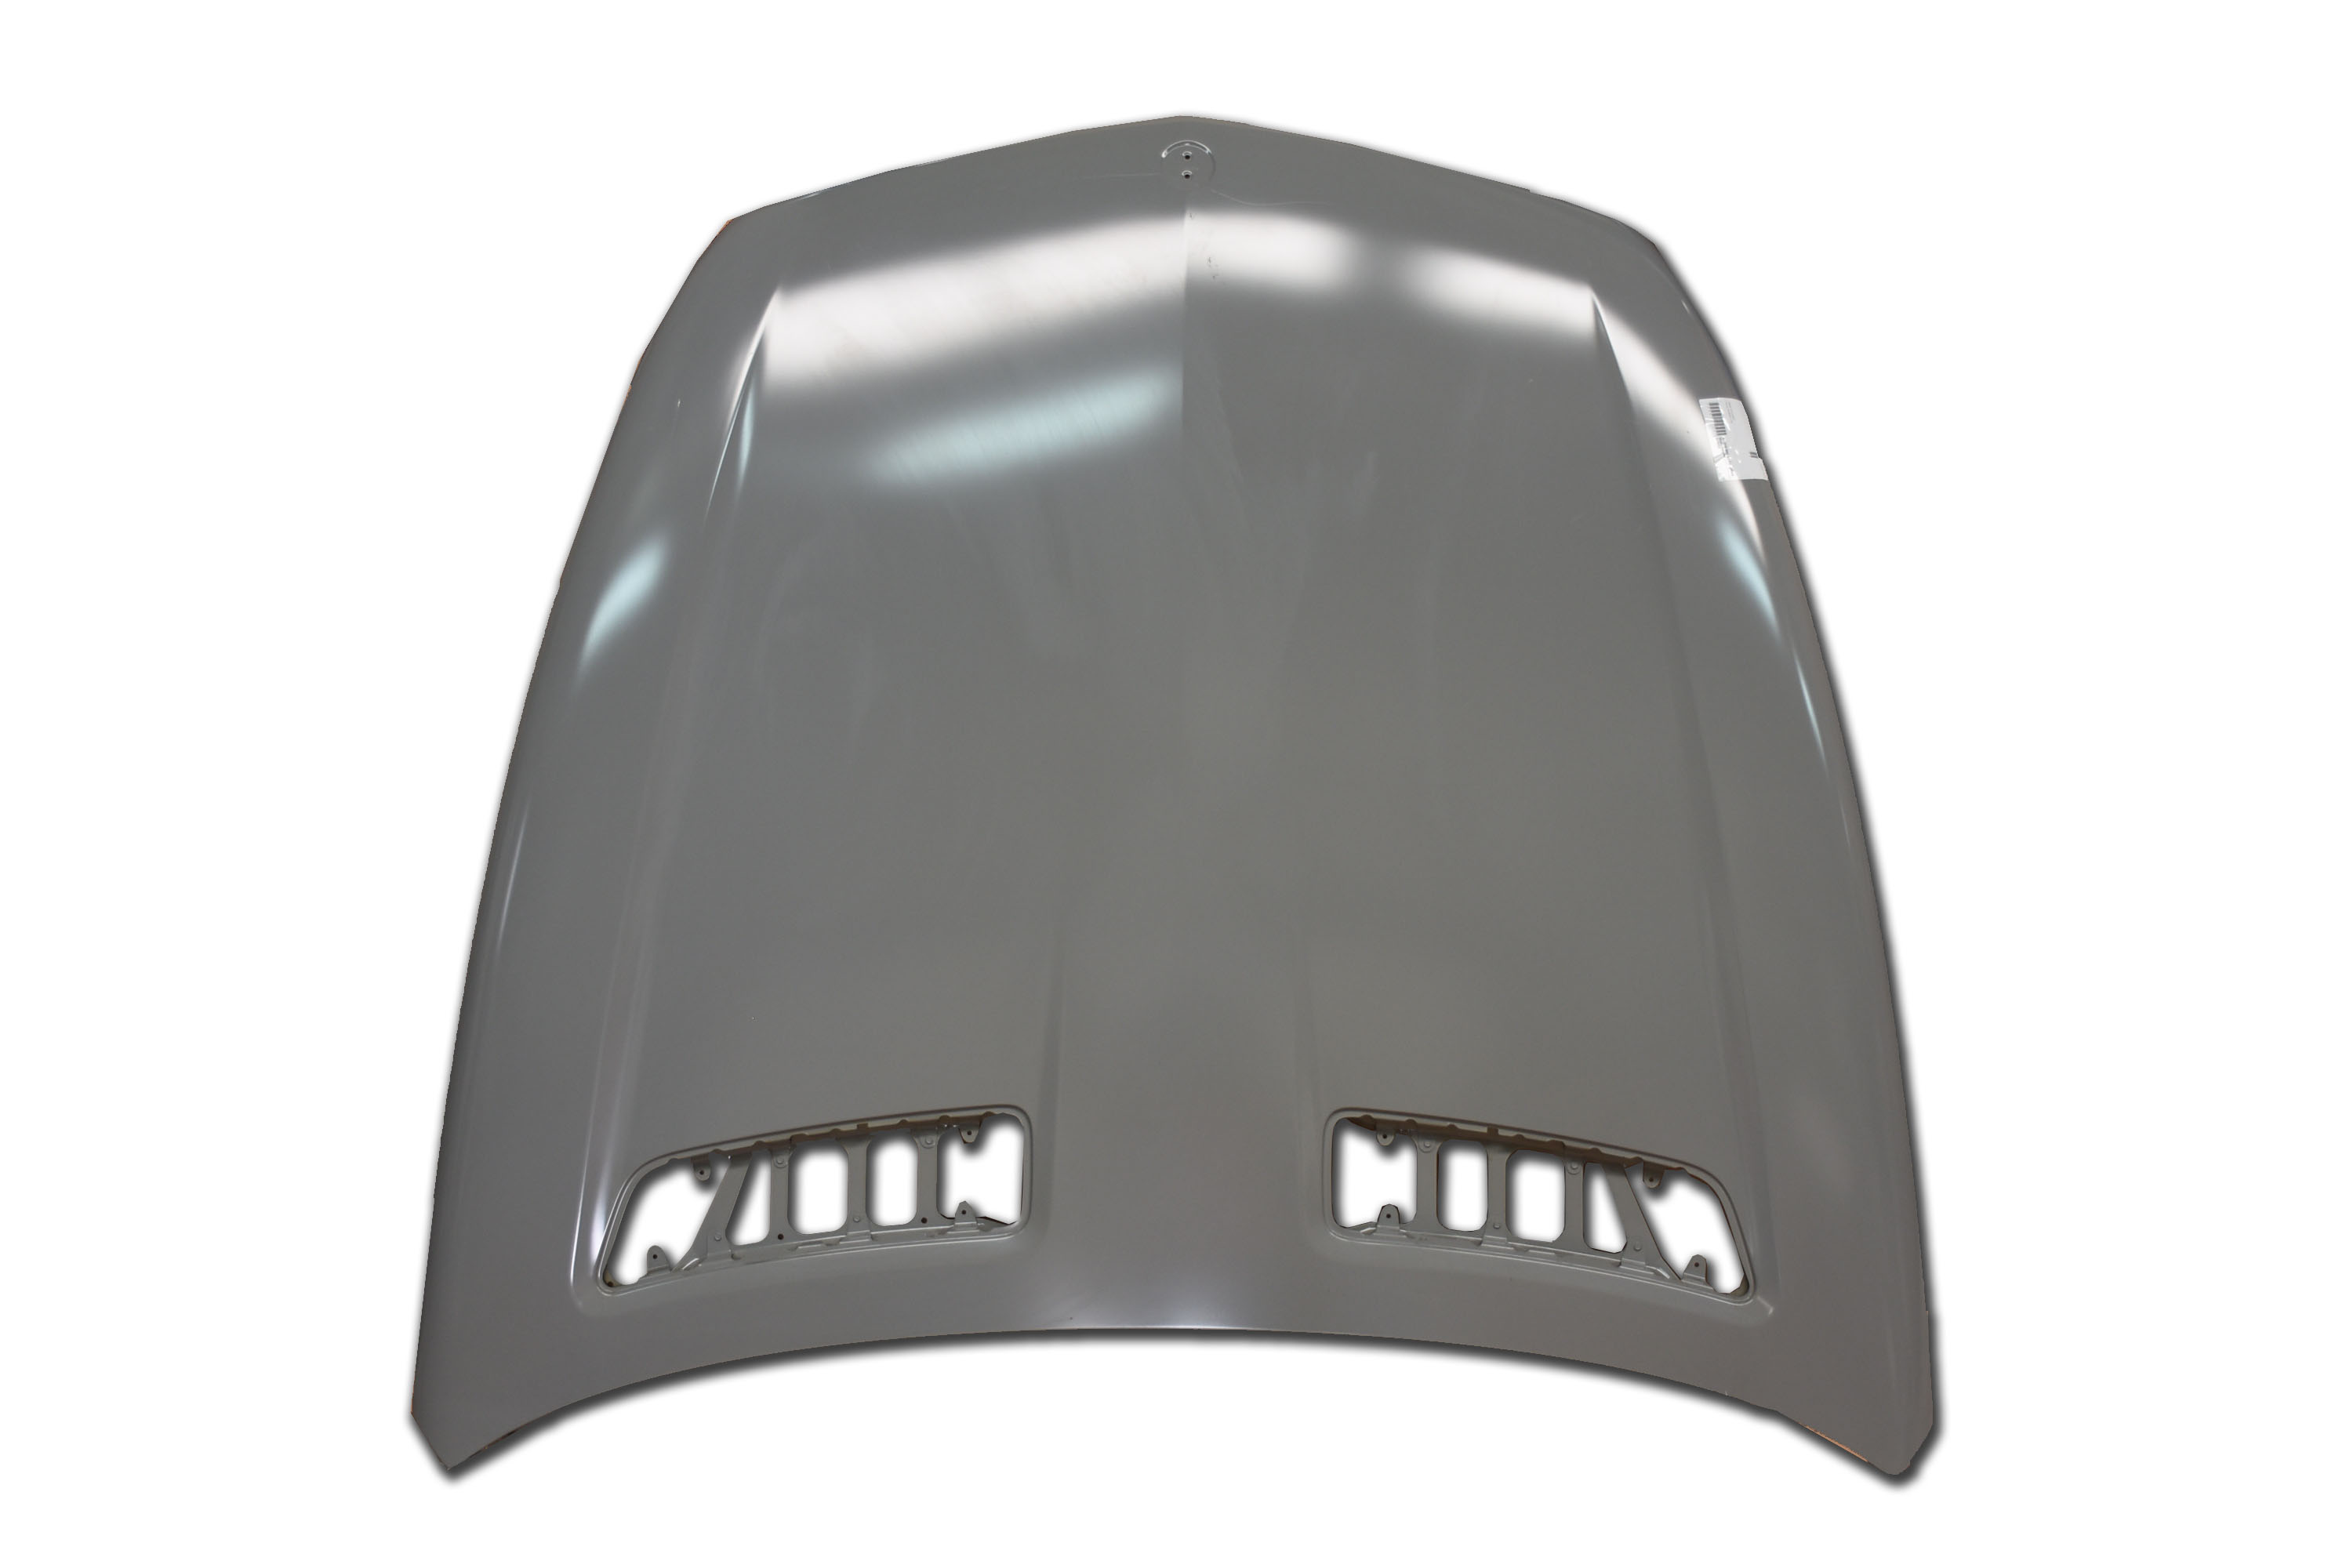 A2168800157 9999 bonnet or hood